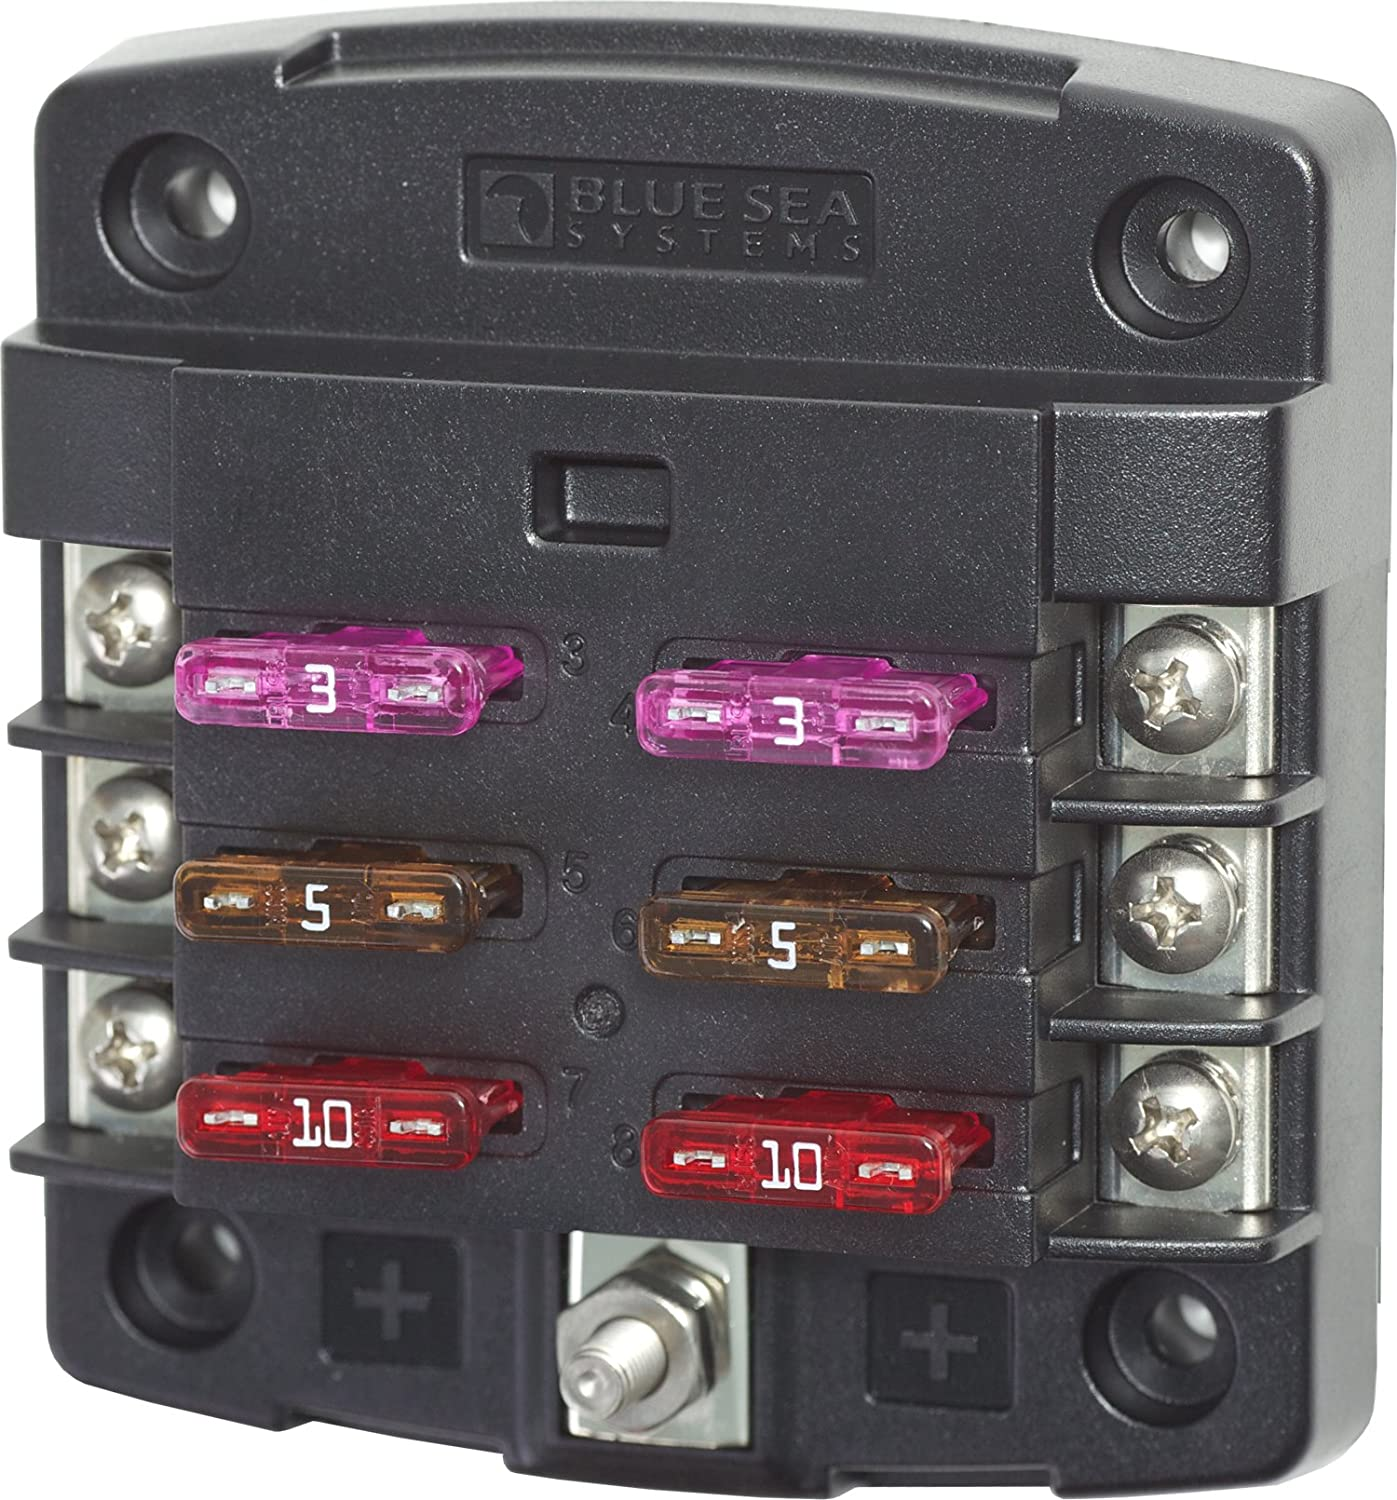 Blue Sea Systems St Blade 12 Circuit Fuse Block Home Exterior Box Marine Sports Outdoors